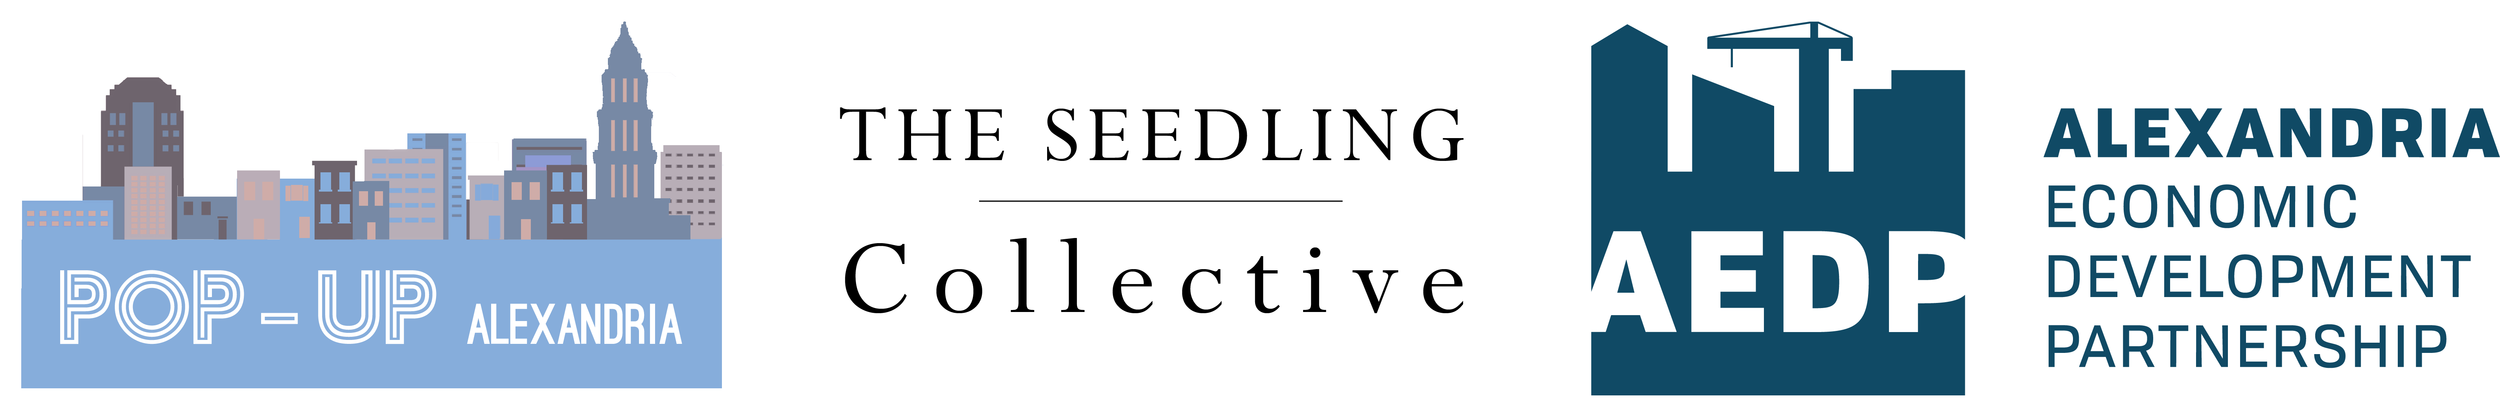 AEDP + pop-up + seedling joint logo white bkgrd (1).png